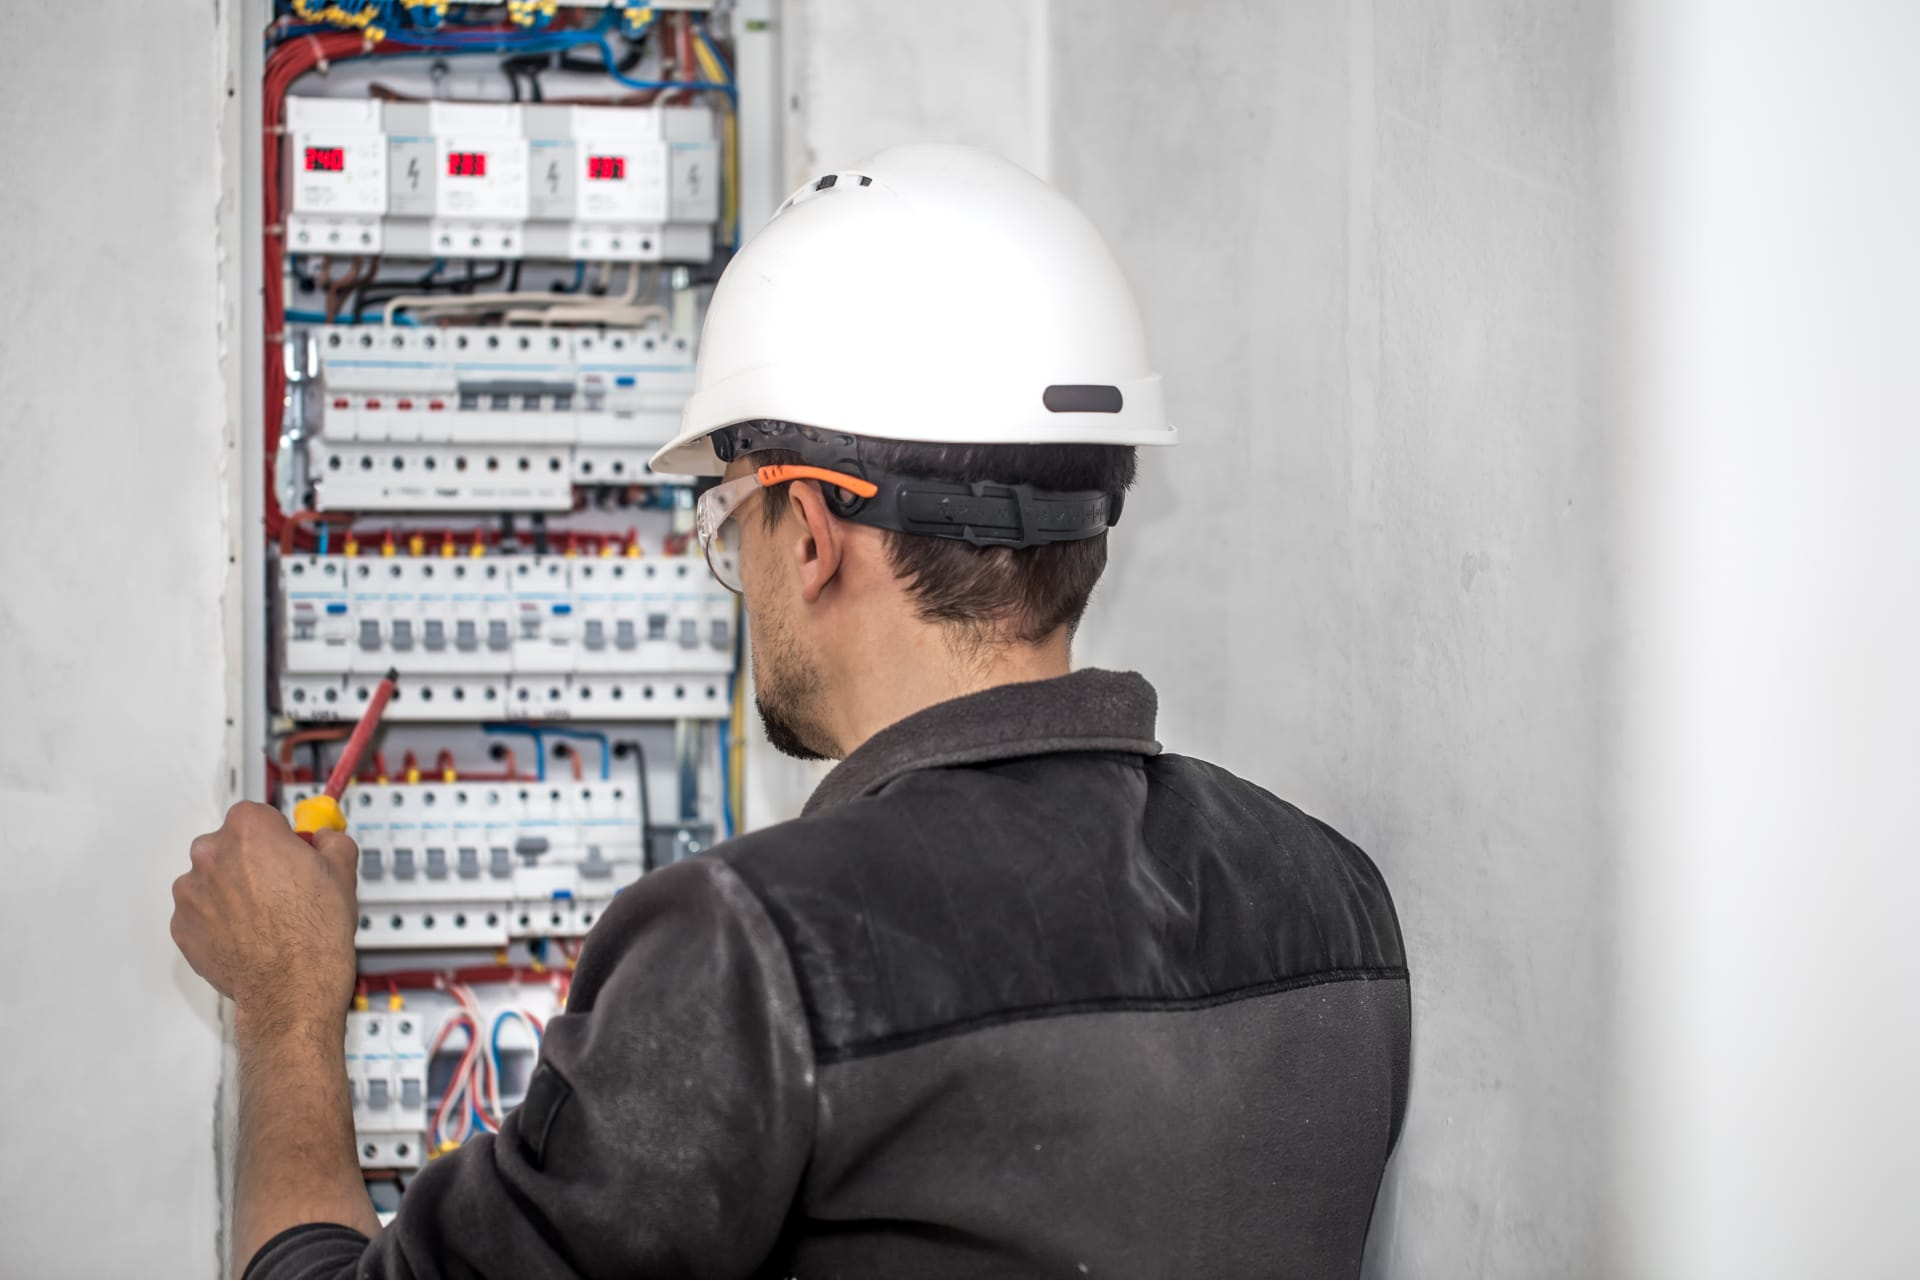 Technician working on an electrical panel